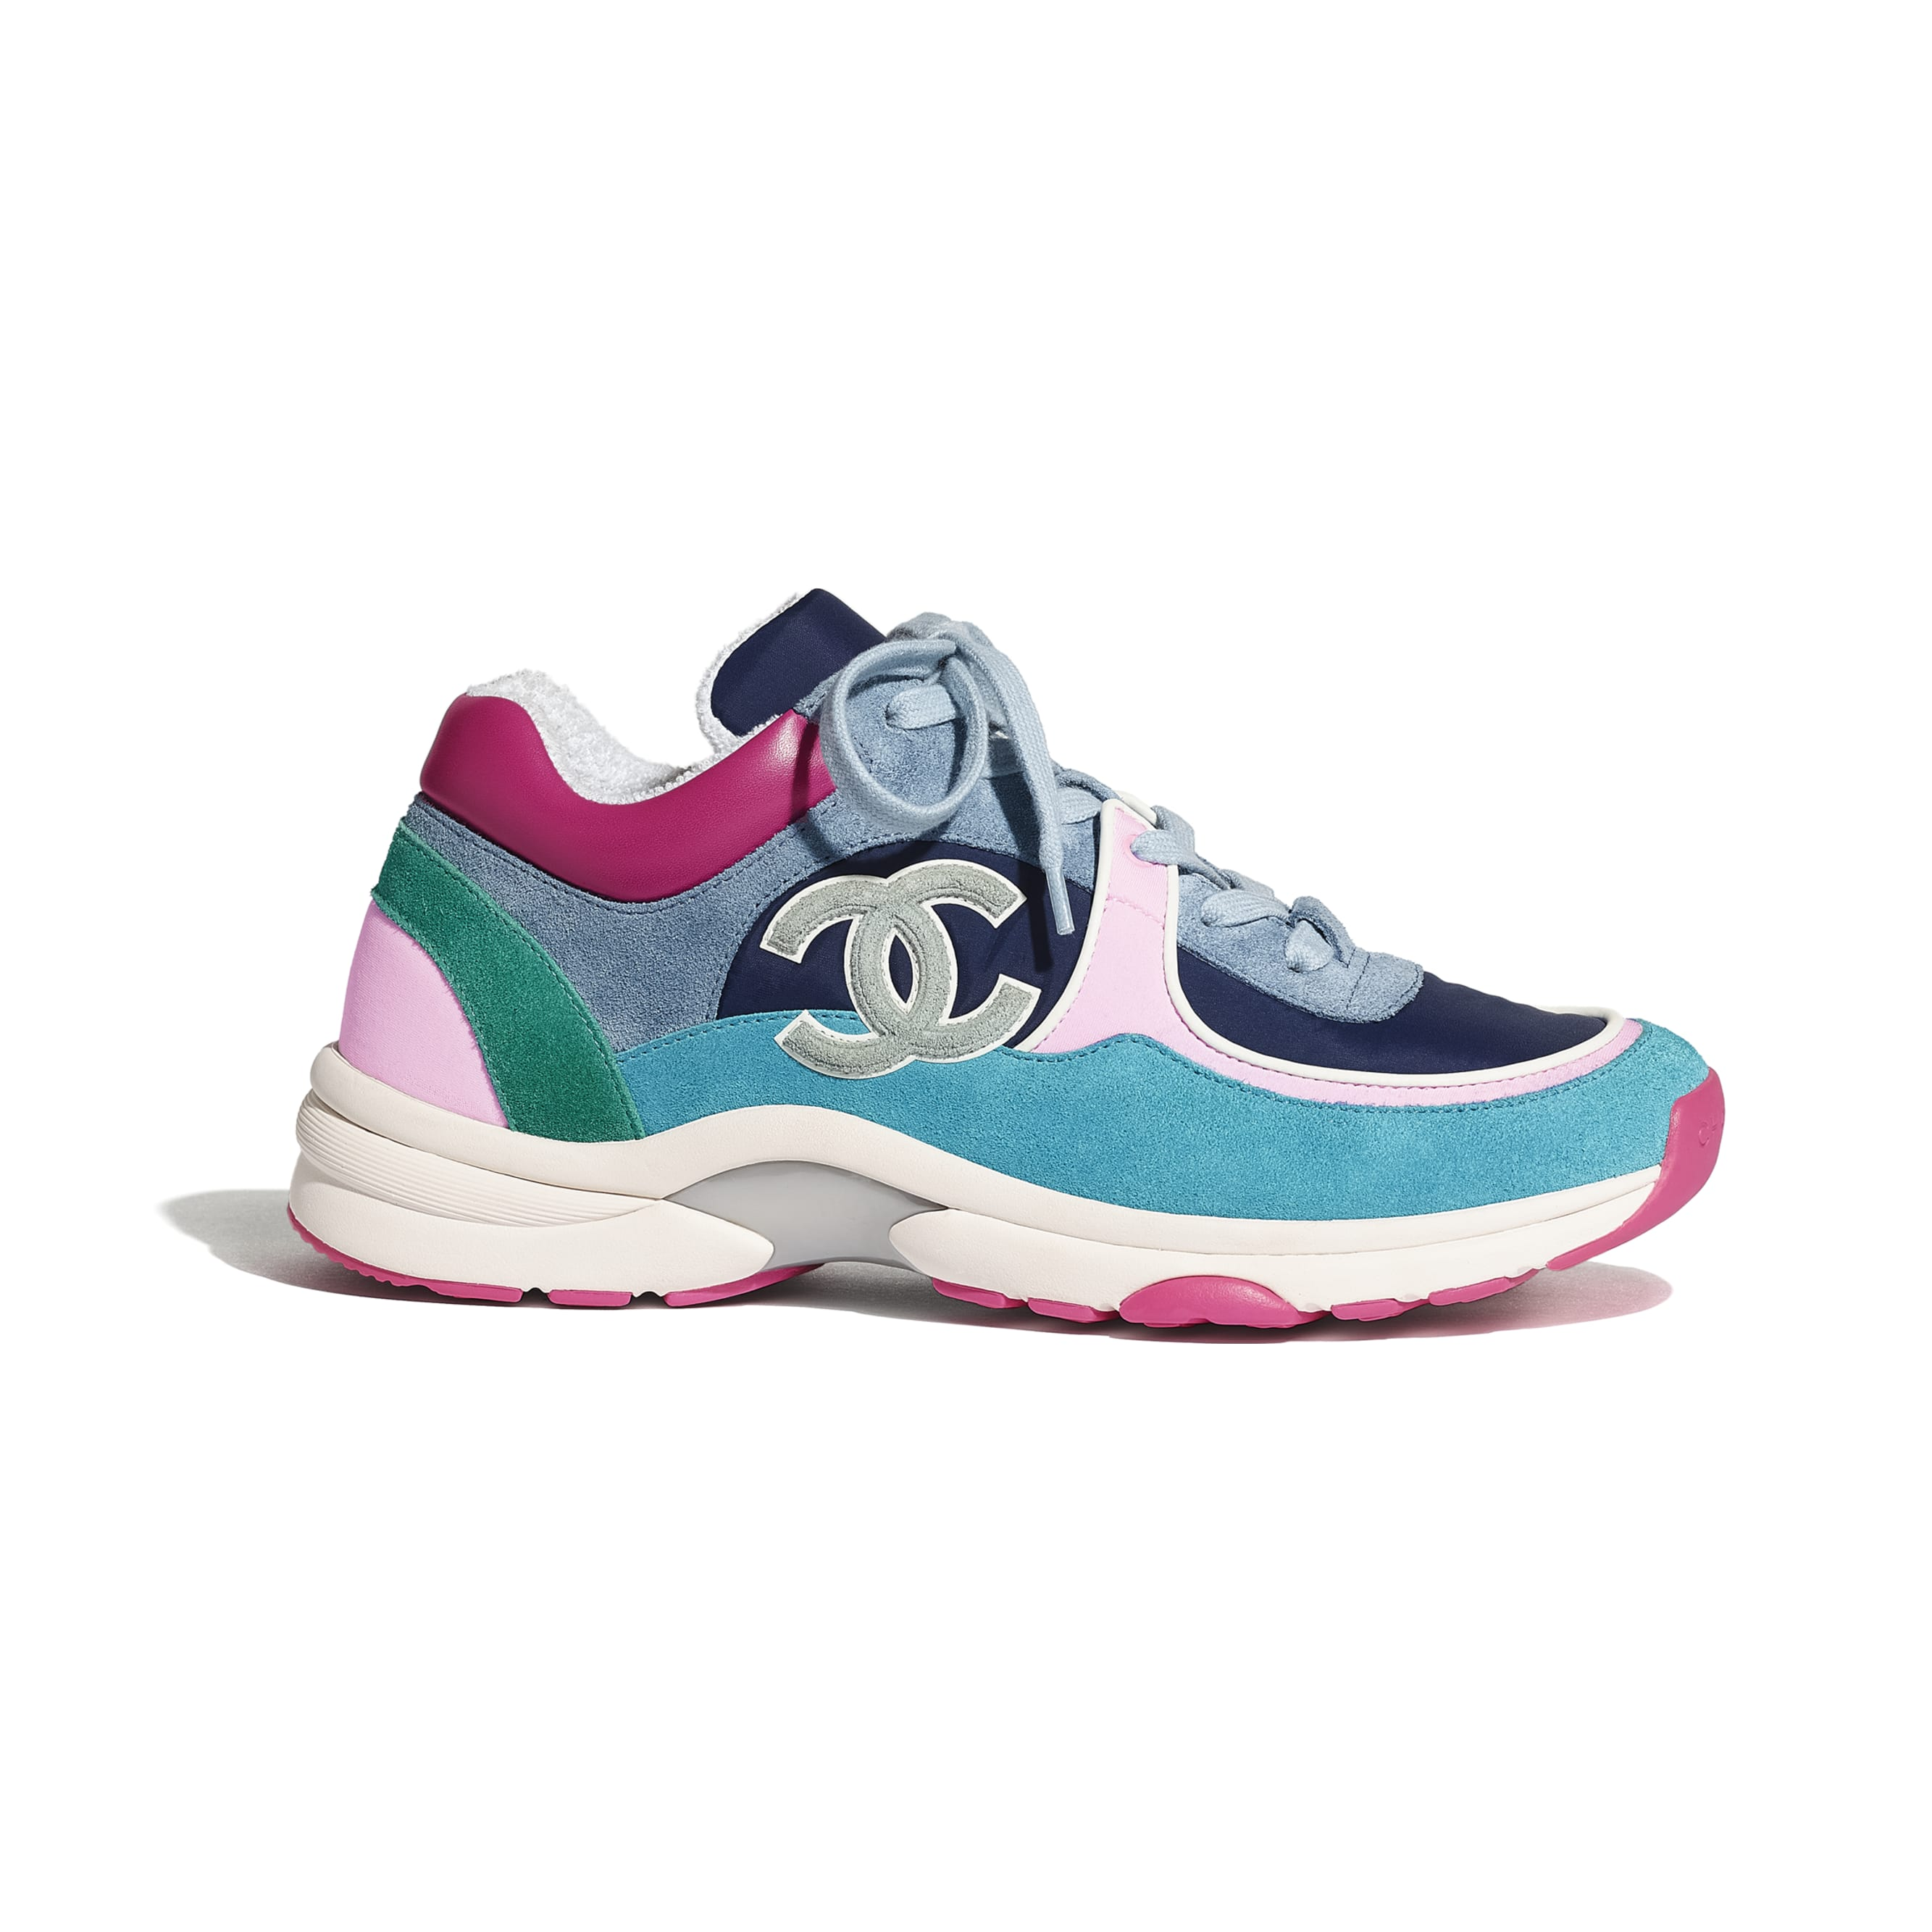 Sneakers - Blue, Pink & Turquoise - Velvet Calfskin & Mixed Fibers - CHANEL - Default view - see standard sized version